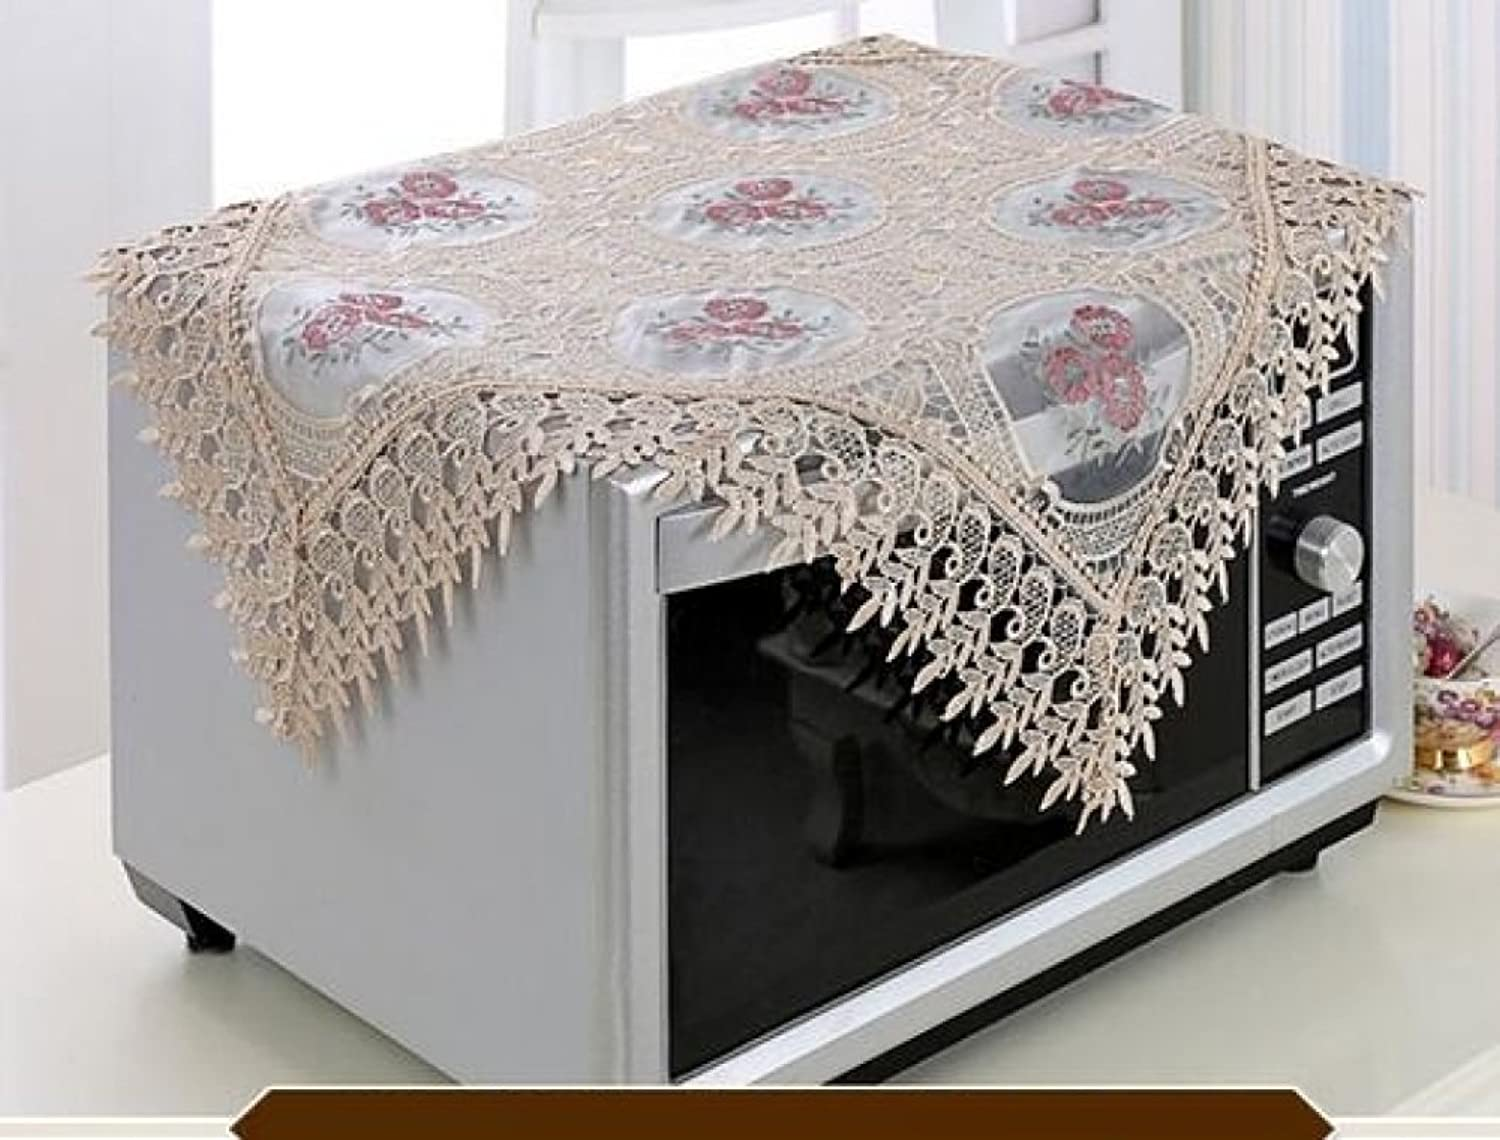 ZXY tablecloth European Lace Table flag Cover cloth embroidery waterproof oilproof dustproof table cloth Home Decoration,F,75220cm